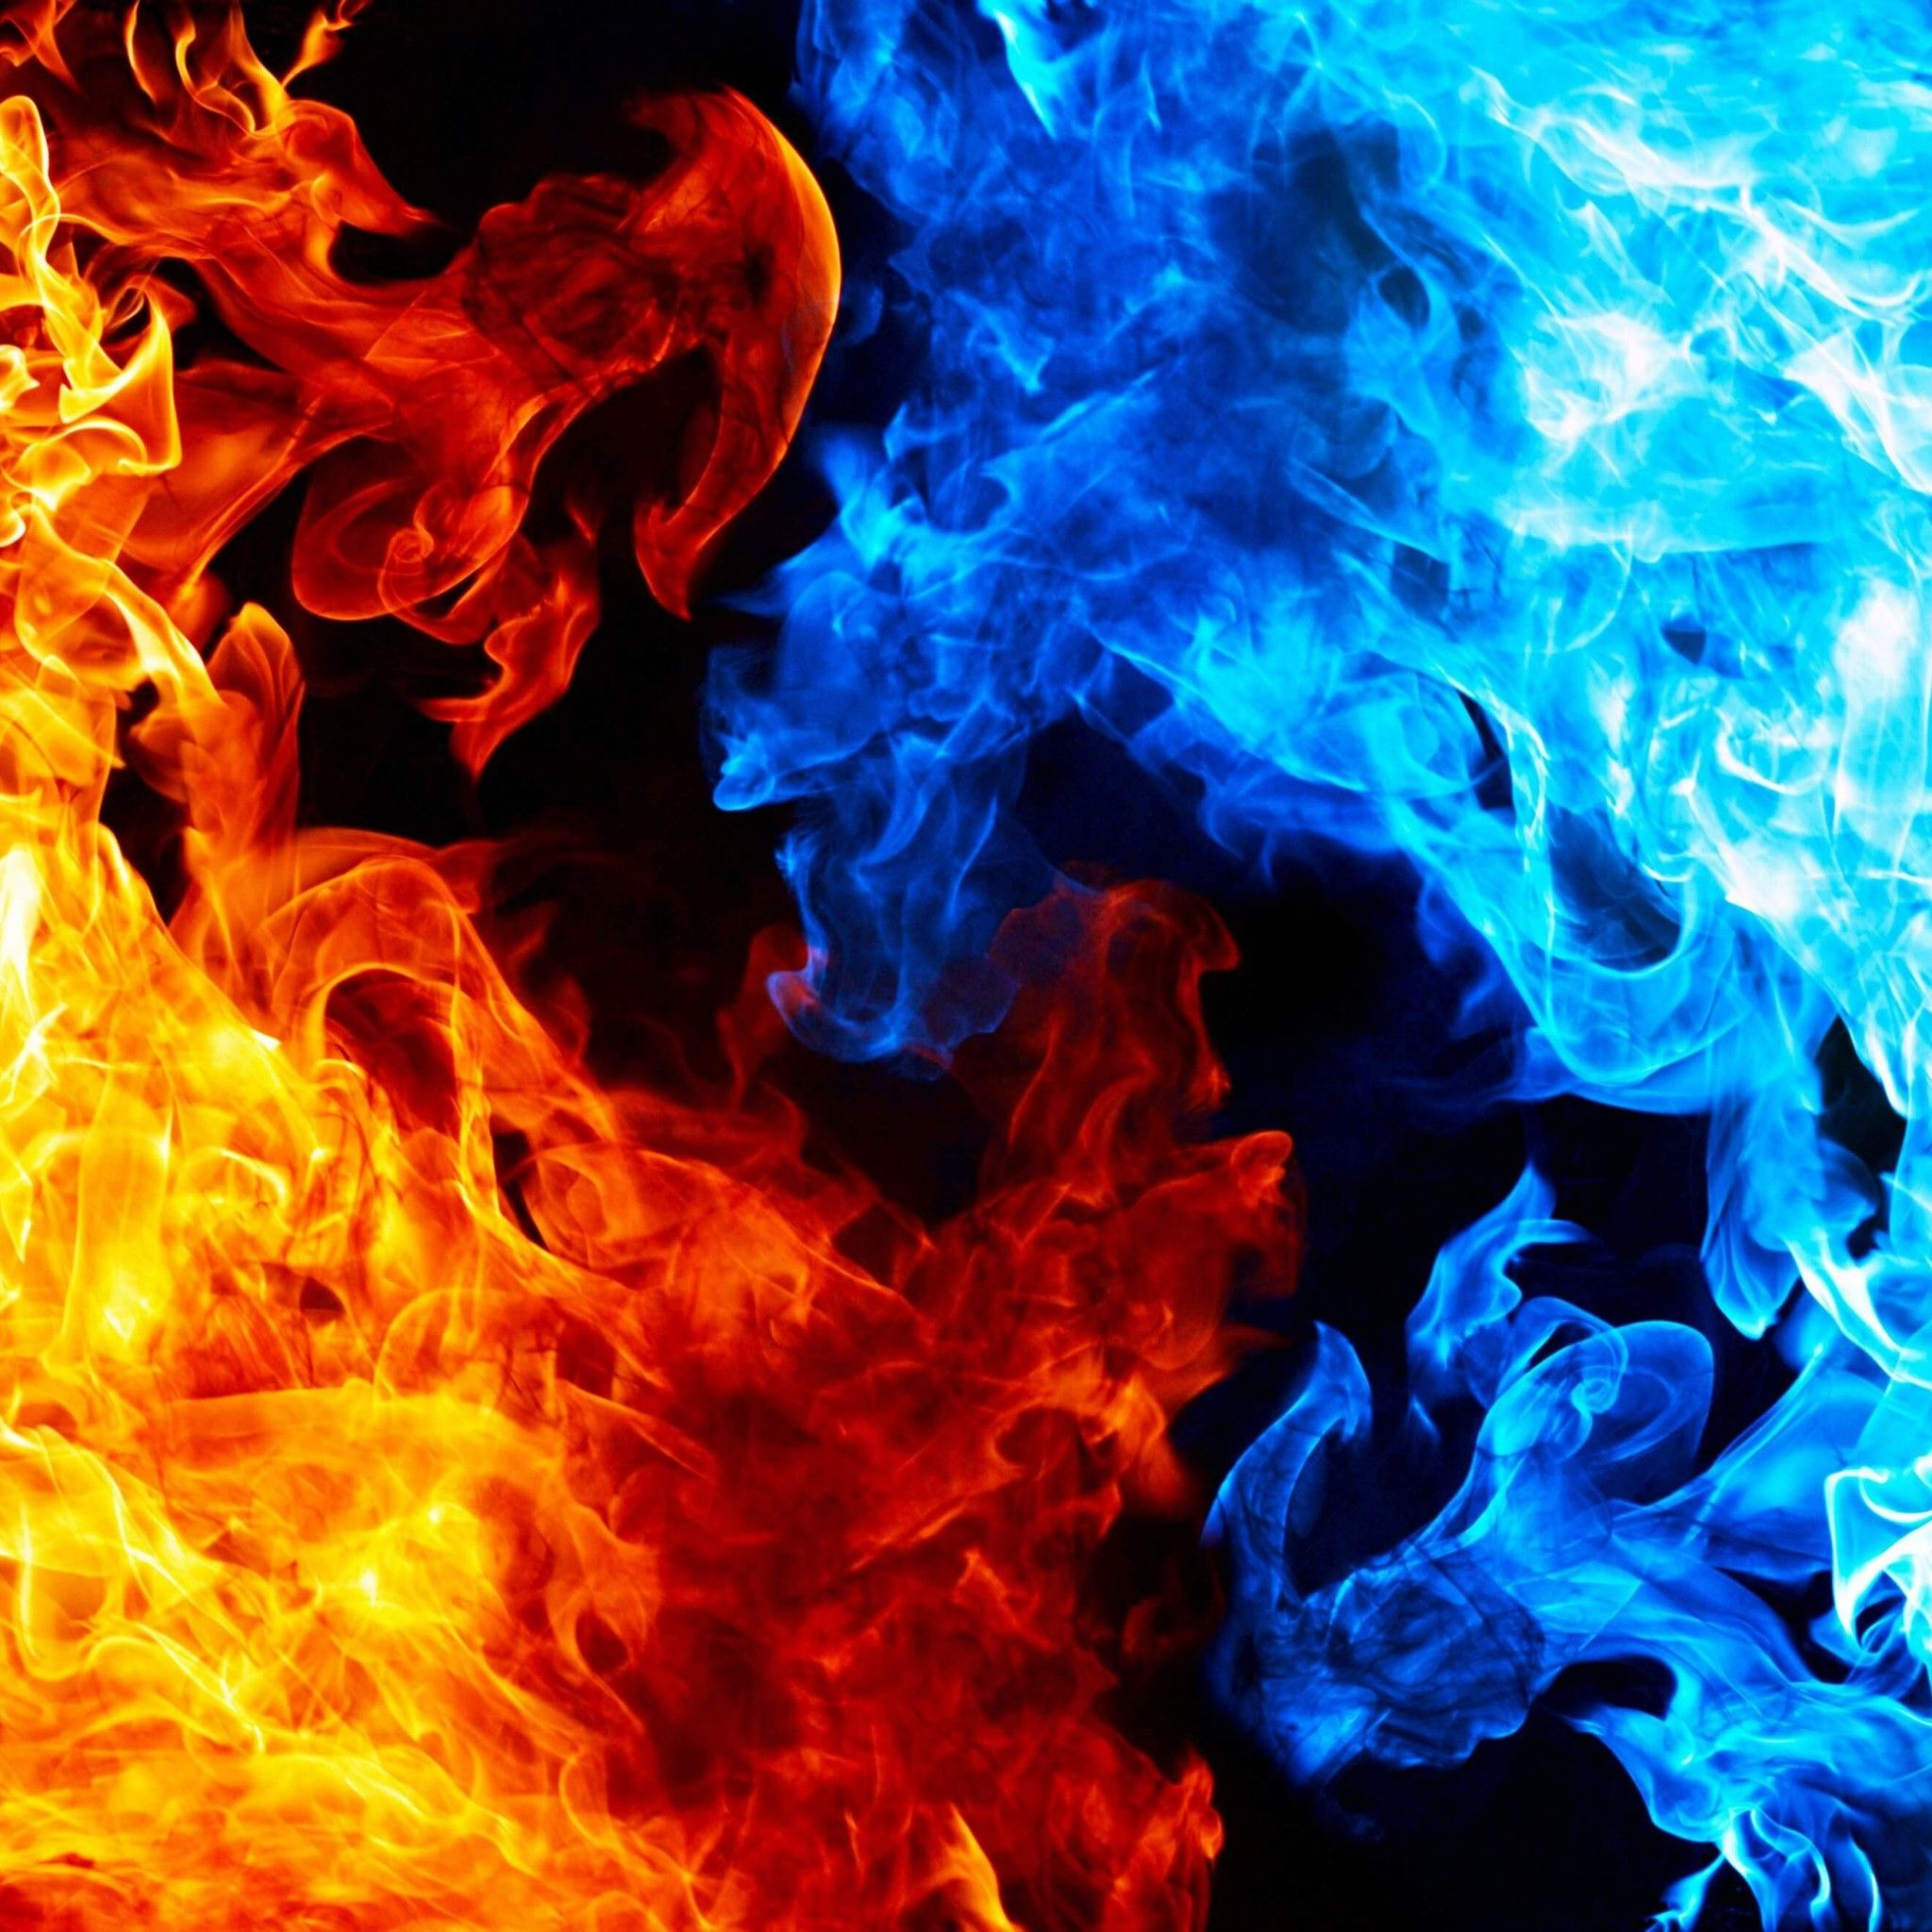 Red And Blue Fire Wallpaper Fire And Ice Red And Blue Wallpaper